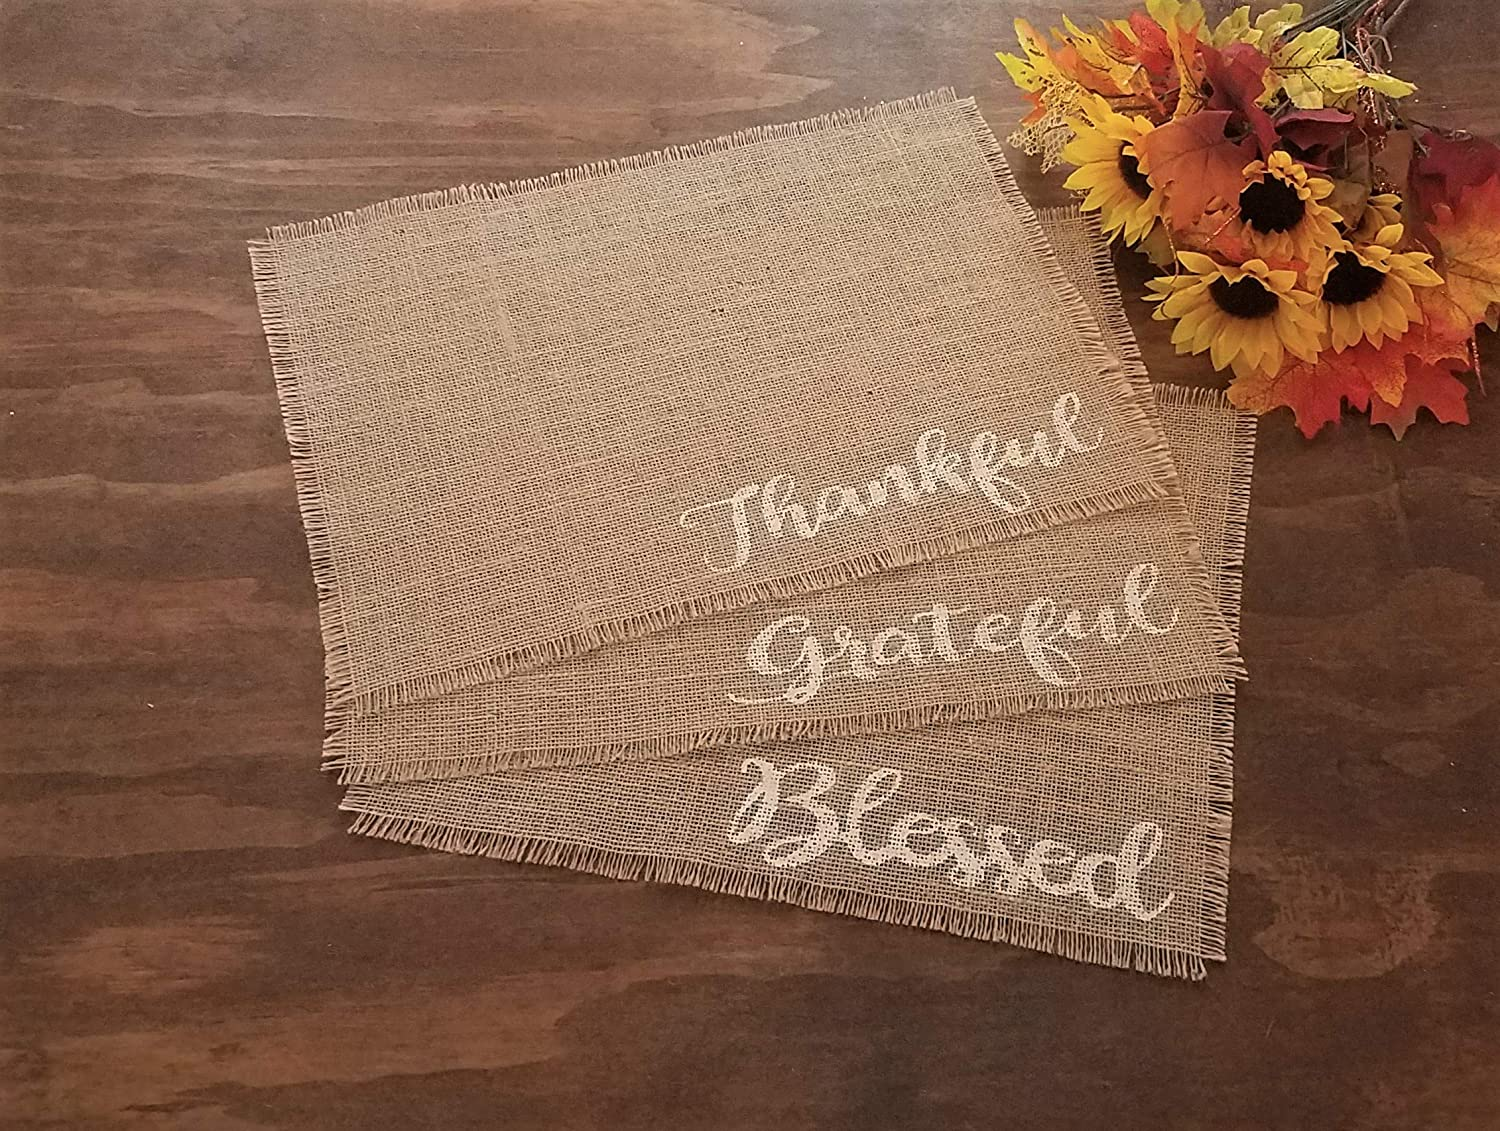 Rustic Fall Placemats For Dining Table, Burlap Fall Placemats, Fall Table Decorations, Rustic Thanksgiving Table Decor, Thanksgiving Placemats For Dining Table Set of 2, 4, 6, 8, 10, or 12